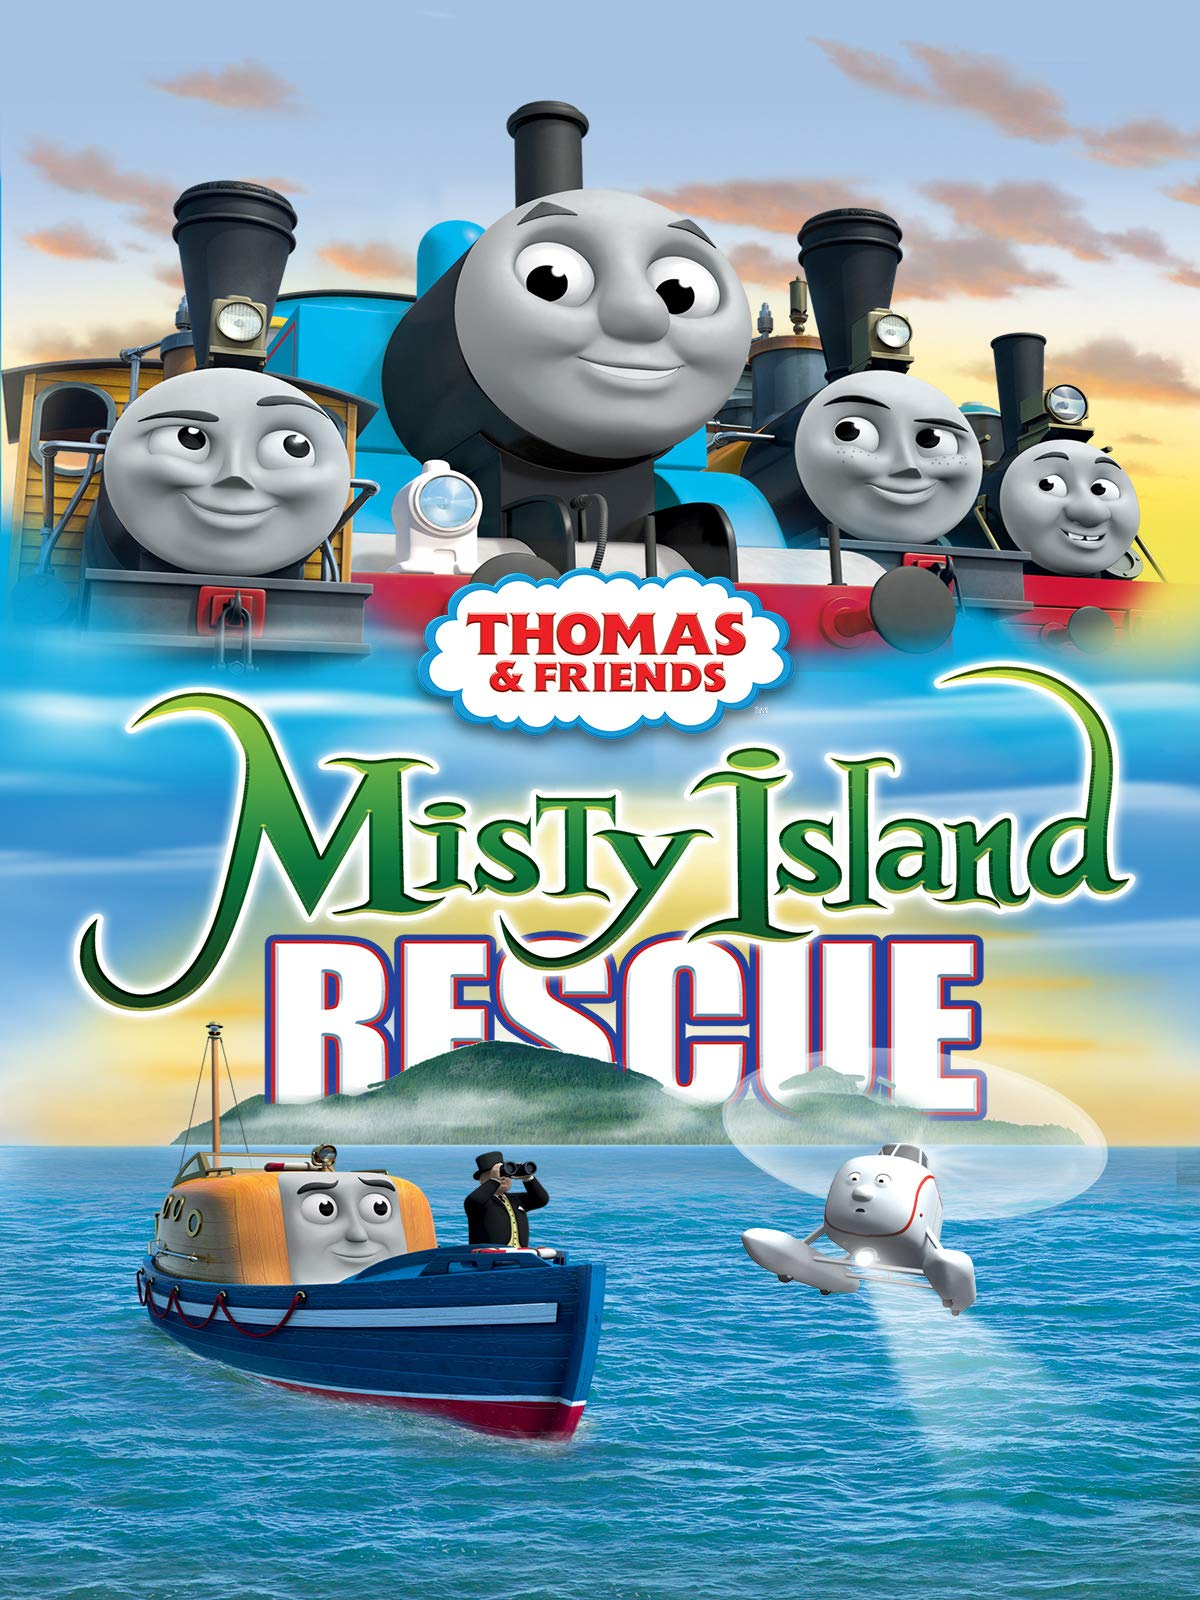 Thomas & Friends: Misty Island Rescue (UK)